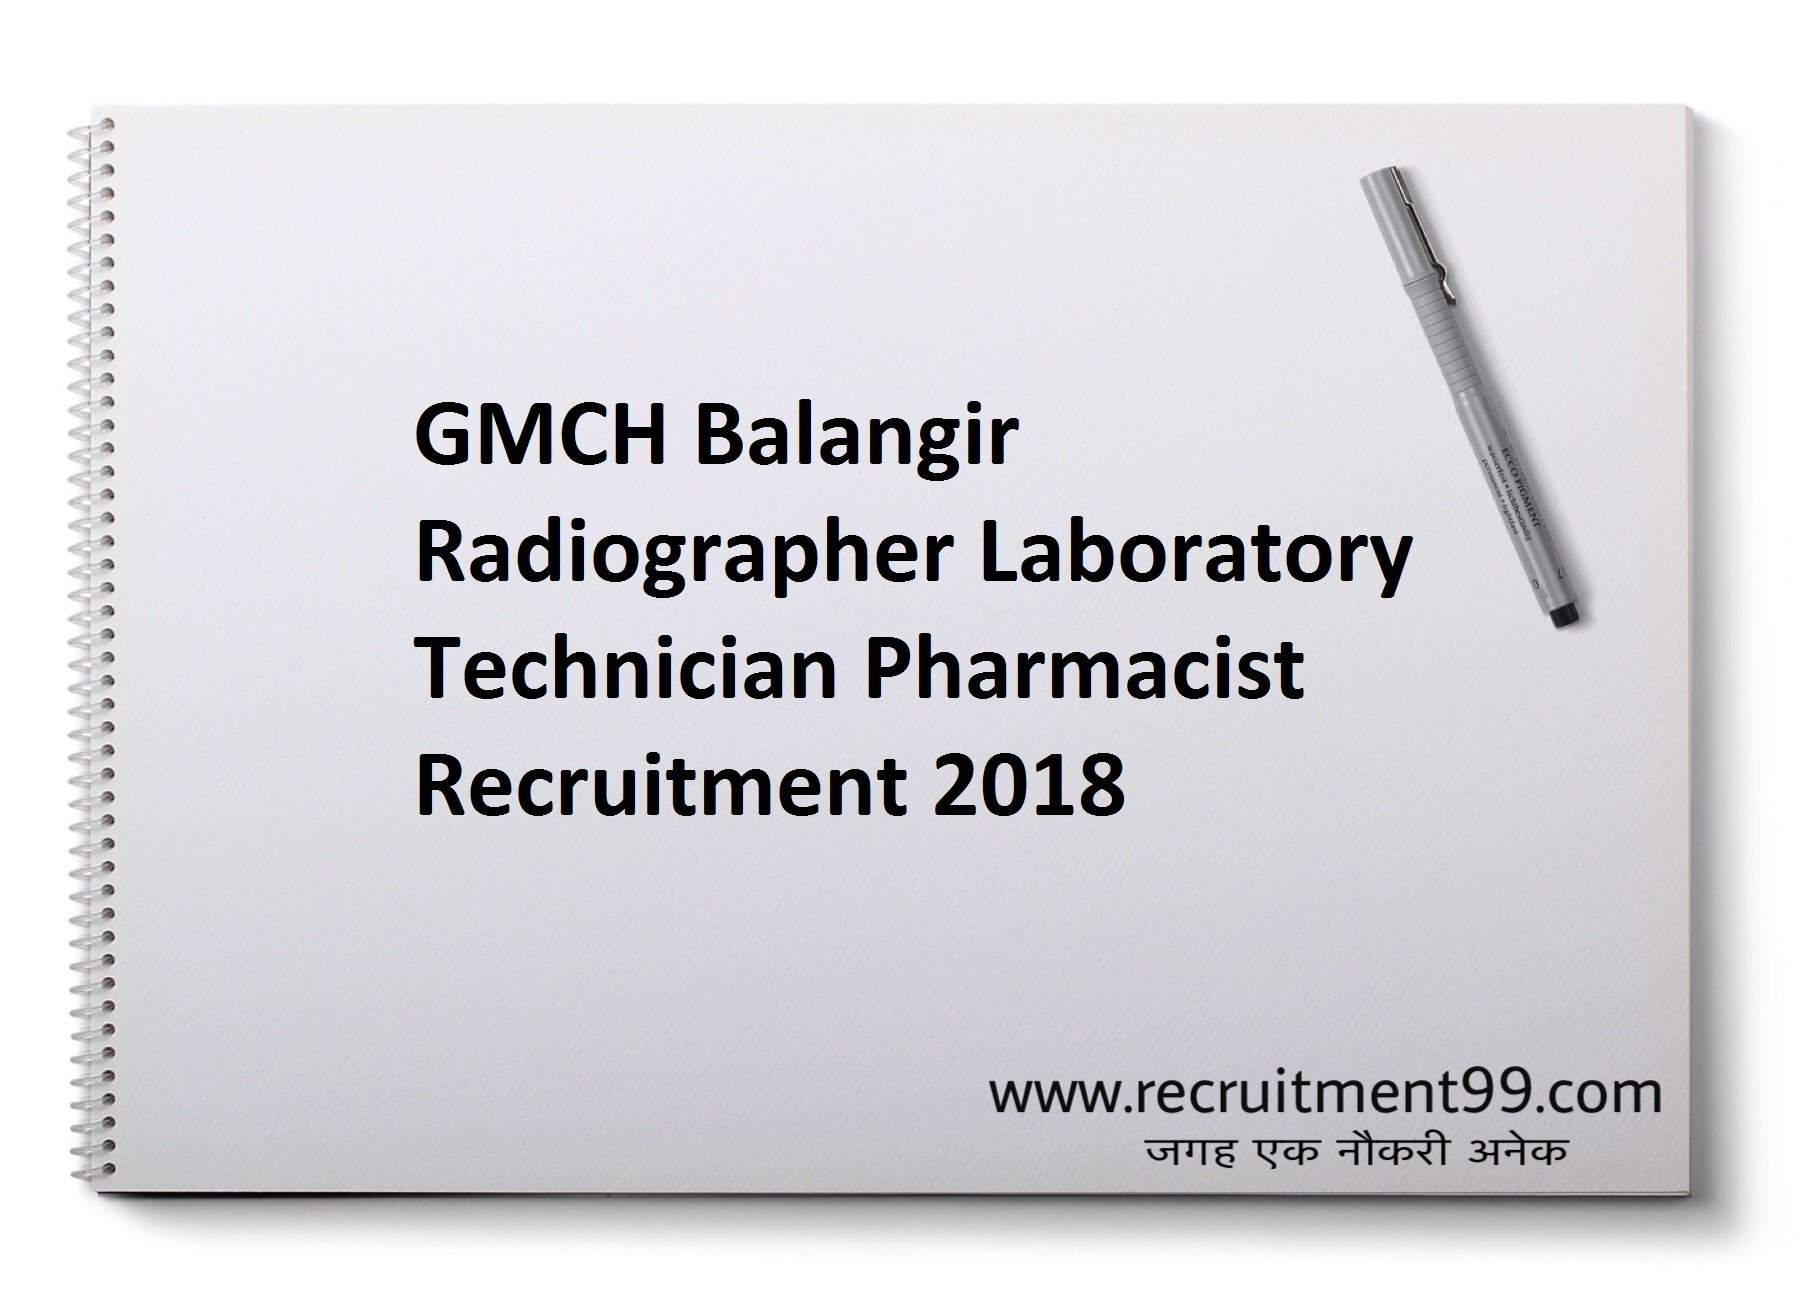 GMCH Balangir Radiographer Laboratory Technician Pharmacist Recruitment Admit Card Result 2018